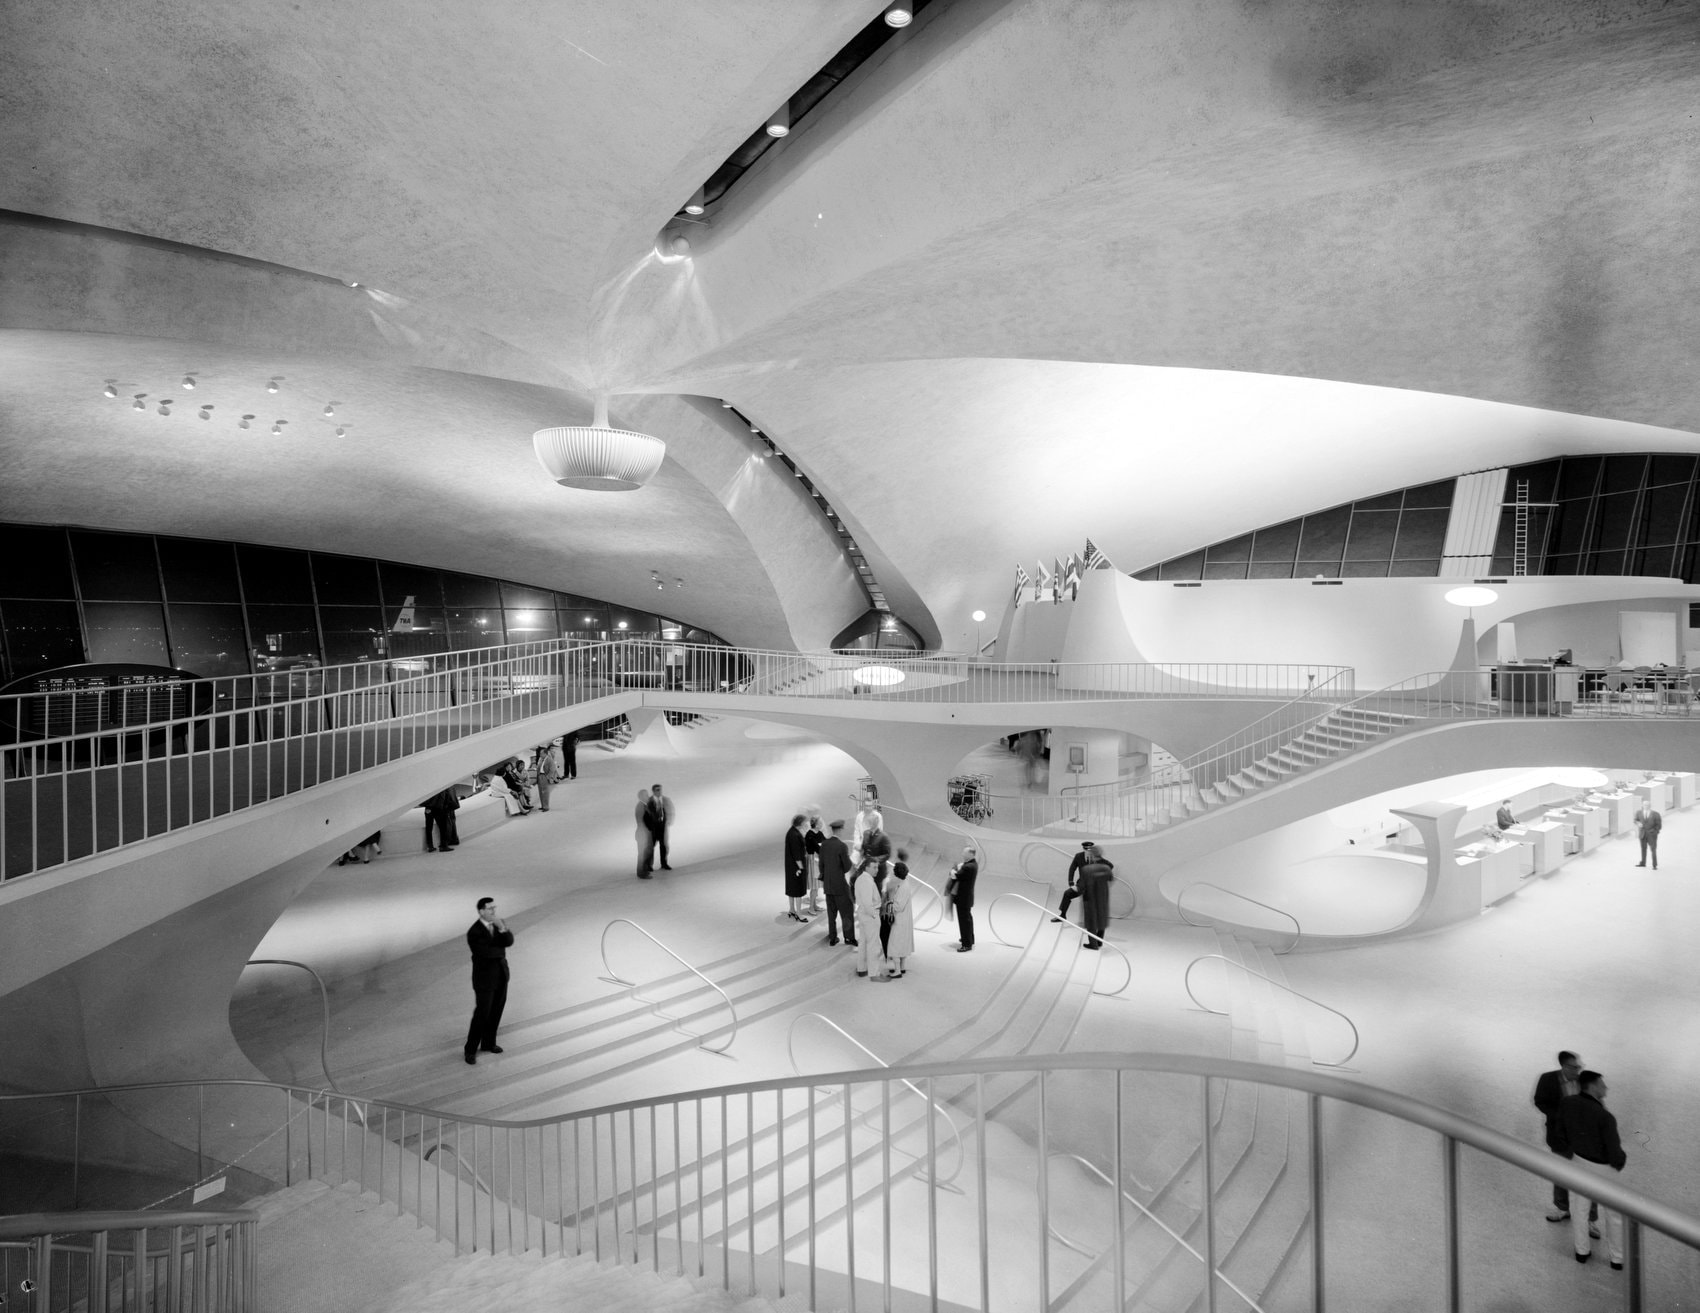 Inside the Idlewild JFK airport terminal in the 1960s (3)